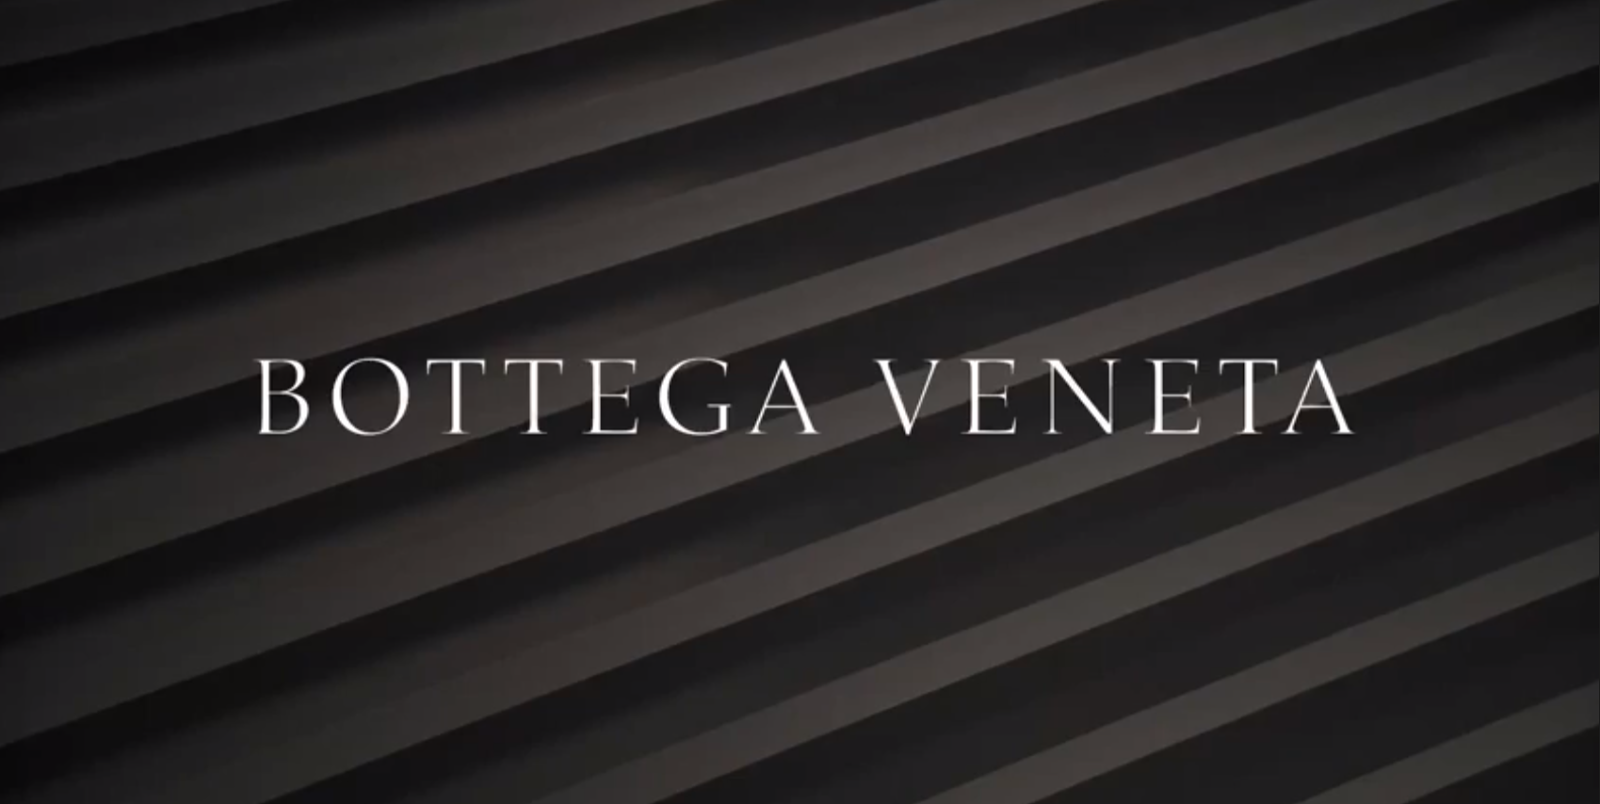 Bottega Veneta's Early Fall 2014 Video